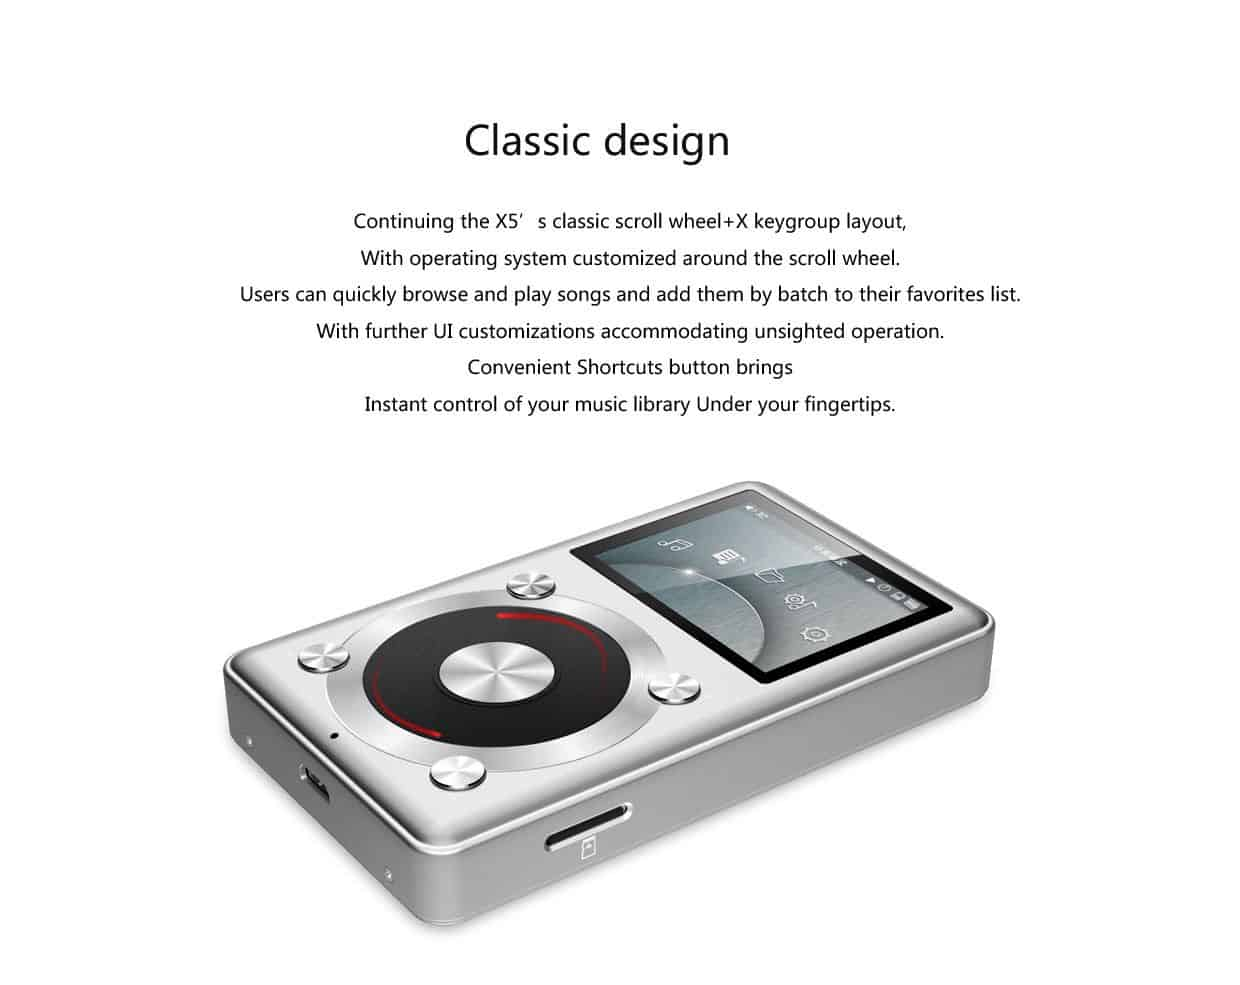 amazon Fiio X1 reviews Fiio X1 on amazon newest Fiio X1 prices of Fiio X1 Fiio X1 deals best deals on Fiio X1 buying a Fiio X1 lastest Fiio X1 what is a Fiio X1 Fiio X1 at amazon where to buy Fiio X1 where can i you get a Fiio X1 online purchase Fiio X1 Fiio X1 sale off Fiio X1 discount cheapest Fiio X1 Fiio X1 for sale amplifier for fiio x1 album art fiio x1 alternative fiio x1 avis fiio x1 amazon uk fiio x1 achat fiio x1 amazon fiio x1 armband fiio x1 audible fiio x1 analisis fiio x1 bán fiio x1 best headphones for fiio x1 buy fiio x1 best micro sd card for fiio x1 best iem for fiio x1 best buy fiio x1 battery replacement fiio x1 best price fiio x1 black friday fiio x1 bluetooth adapter for fiio x1 cowon m2 vs fiio x1 cowon j3 vs fiio x1 có nên mua fiio x1 canada computers fiio x1 cowon i9 vs fiio x1 cowon e3 vs fiio x1 cover fiio x1 comprar fiio x1 colorfly c3 vs fiio x1 compare fiio x1 và fiio x3 danh gia fiio x1 difference between fiio x1 and x3 does fiio x1 have bluetooth does fiio x1 need amp does fiio x1 play mp3 dignis leather case for fiio x1 difference between fiio x1 and x5 does fiio x1 work with itunes dignis fiio x1 does fiio x1 play video egghead fiio x1 earphones for fiio x1 earbuds for fiio x1 exfat fiio x1 e12a fiio x1 ecualizador fiio x1 el fiio x1 erfahrungen fiio x1 erfahrung fiio x1 essai fiio x1 firmware fiio x1 firmware fiio x1 1.4 format fiio x1 firmware fiio x1 1.2 fiio x3 2nd gen vs fiio x1 fiio x1 và x5 fiio m3 vs fiio x1 forum fiio x1 fiio x3 vs fiio x1 firmware 1.5 fiio x1 good headphones for fiio x1 gia may nghe nhac fiio x1 gapless playback fiio x1 giá fiio x1 grado fiio x1 galaxy s6 vs fiio x1 gebrauchsanweisung fiio x1 geizhals fiio x1 gold fiio x1 đánh giá fiio x1 harga fiio x1 headphones for fiio x1 how to charge fiio x1 how to add music to fiio x1 how to restart fiio x1 hifiman hm700 vs fiio x1 headphone for fiio x1 how to use fiio x1 hidizs ap100 và fiio x1 how to upgrade fiio x1 iphone 6 vs fiio x1 ihifi 770 vs fiio x1 ipod classic fiio x1 ibasso dx50 fiio x1 ipod fiio x1 ie80 fiio x1 is fiio x1 worth it ibasso dx50 và fiio x1 fiio x1 và ipod classic iphone 4s và fiio x1 jual fiio x1 jual fiio x1 kaskus jual fiio x1 bekas jaben fiio x1 jual fiio x1 second jual fiio x1 surabaya jual dap fiio x1 astell kern jr vs fiio x1 ak jr vs fiio x1 kualitas fiio x1 kualitas suara fiio x1 kelebihan fiio x1 kaskus fiio x1 kopfhörer für fiio x1 koss porta pro fiio x1 kopfhörer fiio x1 kakaku fiio x1 kaufen fiio x1 stacking kit fiio x1 loading music on fiio x1 leather case for fiio x1 lettore fiio x1 lazada fiio x1 lecteur mp3 fiio x1 lecteur fiio x1 les numeriques fiio x1 line out fiio x1 latest fiio x1 firmware lieferumfang fiio x1 máy nghe nhạc fiio x1 mp3 player fiio x1 mua fiio x1 memory card for fiio x1 micro sd card for fiio x1 mở hộp fiio x1 m4a fiio x1 máy fiio x1 mp4 fiio x1 máy nghe nhạc lossless fiio x1 new fiio x1 navigation fiio x1 nwz a15 fiio x1 návod fiio x1 nwz a15 và fiio x1 nwz-a17 và fiio x1 nw-a16 fiio x1 note 4 vs fiio x1 olx fiio x1 onn x5 vs fiio x1 odtwarzacz fiio x1 opa2322 fiio x1 odtwarzacz mp4 fiio x1 oyaide fiio x1 otg fiio x1 opinie fiio x1 ostry kc06a fiio x1 opinioni fiio x1 pono vs fiio x1 player fiio x1 pono player vs fiio x1 problems with fiio x1 podcasts on fiio x1 pret fiio x1 prueba fiio x1 prix fiio x1 preisvergleich fiio x1 preis fiio x1 qoo10 fiio x1 que es fiio x1 qobuz fiio x1 q1 và x1 fiio fiio x1 audio quality fiio x1 vs x3 sound quality fiio x1 line out quality fiio x1 sound quality review fiio x1 quality fiio x1 bose qc25 review fiio x1 kaskus review fiio x1 voz review fiio x1 indonesia reboot fiio x1 ruizu x02 vs fiio x1 refurbished fiio x1 replace battery fiio x1 rockbox fiio x1 reproductor fiio x1 reproductor mp3 audio technica fiio x1 silver spesifikasi fiio x1 sd card for fiio x1 singapore fiio x1 sync fiio x1 with itunes sony nwz-a15 fiio x1 support fiio x1 spotify fiio x1 shuffle fiio x1 sdxc fiio x1 treoo fiio x1 tf card not found fiio x1 tuff-luv faux leather case cover for fiio x1 tai nghe cho fiio x1 tipidpc fiio x1 trên tay fiio x1 tai nghe fiio x1 taobao fiio x1 tutorial fiio x1 test du fiio x1 updating fiio x1 firmware use fiio x1 as dac using fiio x1 updating fiio x1 using fiio x1 with itunes unlock fiio x1 unbox fiio x1 upgrade fiio x1 user manual fiio x1 upgrade firmware fiio x1 voz fiio x1 video fiio x1 xduoo x2 vs fiio x1 sony nwz a15 và fiio x1 sony walkman vs fiio x1 dx90 vs fiio x1 sansa vs fiio x1 xduoo x3 vs fiio x1 xuelin ihifi 770 vs fiio x1 xduoo vs fiio x1 fiio x3ii vs fiio x1 fiio x3 ii fiio x1 cowon x9 vs fiio x1 fiio x3k vs fiio x1 yodobashi fiio x1 fiio x1 youtube youtube fiio x1 review youtube fiio x1 fiio x1 review youtube fiio x1 yandex fiio x1 young fiio x1 gold youtube fiio x1 new york fiio x1 + yamaha eph 100 zococity fiio x1 zune hd và fiio x1 zune vs fiio x1 cowon z2 vs fiio x1 sony z3 vs fiio x1 sony zx1 vs fiio x1 fiio x1 và sansa clip zip fiio x1 new zealand fiio x1 zilver fiio x1 zs-70 chất âm fiio x1 đánh giá máy nghe nhạc fiio x1 cowon iaudio 10 vs fiio x1 firmware 1.4 fiio x1 firmware 1.6 fiio x1 fiio x1 1.4 fiio x1 1.6 fiio x1 1.2 fiio x1 firmware 1.7 fiio x1 firmware 1.22 fiio x1 firmware 1.4 download 250 ohm fiio x1 2 fiio x1 2 fiio x1 (2nd generation) mp3 player fiio x1 256gb fiio x1 200gb fiio x1 2nd generation fiio x1 review 2015 fiio x1 2015 fiio x1 vs x3 2nd fiio x1 portable high definition audio player 192khz/24bit silber fiio x1 3kshop fiio x1 fat32 fiio x1 mp3 320 fiio x1 320kbps fiio x1 300 ohm fiio x1 mp3 320kbps fiio x1 32 ohm 320 kbps on fiio x1 fiio x1 vs note 3 fiio x1/3 4pda fiio x1 4pda.ru fiio x1 iphone 4 vs fiio x1 ipod touch 4 vs fiio x1 fiio x1 shure 425 fiio x1 vs ipod touch 4g fiio x1 mpeg 4 fiio x1 firmware 1.4 5800 fiio x1 ipod 5.5 vs fiio x1 sennheiser hd 598 fiio x1 ibasso dx50 vs fiio x1 fiio x1 hd598 ipod touch 5g và fiio x1 ipod touch 5 vs fiio x1 shure se535 and fiio x1 iphone 5s vs fiio x1 fiio x1 5giay hifiman 603 vs fiio x1 hifiman hm-603 vs fiio x1 fiio x1 64gb sd fiio x1 64gb fiio x1 hd600 fiio x1 600 ohm fiio x1 hd650 fiio x1 vs hifiman 601 hifiman hm-603 или fiio x1 ihifi 770 c vs fiio x1 sony mdr 7506 fiio x1 xuelin 770c vs fiio x1 ipod nano 7g vs fiio x1 ipod nano 7 vs fiio x1 xuelin ihifi 770c vs fiio x1 ihifi 770 fiio x1 fiio x1 volume 88 fiio x1 max volume 88 fiio x1 volume locked at 88 fiio x1 88 fiio x1 громкость 88 fiio x1 windows 8 takstar pro 80 fiio x1 fiio x1 lautstärke 88 fiio x1 89 cowon iaudio 9+ vs fiio x1 fiio x1 with dt990 cowon x9+ vs fiio x1 fiio x1 99€ fiio a3 x1 fiio anleitung x1 fiio amazon x1 fiio x1 album art fiio x1 alternative fiio x1 portable high definition audio player fiio x1 and e12 fiio baladeurs audiophiles x1 fiio baladeurs audiophiles x1 silver fiio baladeurs audiophiles x1 champagne fiio baladeurs audiophiles x1 silver test fiio baladeurs audiophiles x1 test fiio by oyaide x1 fiio baladeur x1 fiio x1 battery replacement fiio x1 buy fiio x1 sd card fiio x1 vs cowon fiio x1 memory card fiio x1 leather case fiio x1 cena fiio x1 ipod classic fiio x1 chile fiio x1 comprar fiio dac x1 fiio dap x1 fiio x1 digital audio player fiio x1 does not turn on fiio x1 dock fiio x1 firmware download fiio x1 ultraportable hi-res dap fiio ex1 fiio ex1 gen 2 fiio ex1 gen 2 review fiio ex1 ii fiio electronics x1 fiio e12 x1 fiio e07k x1 fiio e11 vs x1 fiio e17 vs fiio x1 fiio e6 vs x1 fiio forum x1 fiio firmware x1 fiio fiio x1 fiio fiio x1 gold fiio x1 head fi fiio x1 firmware 1.3 fiio x1 custom firmware fiio x1 firmware 1.5 fiio x1 microsd fiio x1 vs x3 second generation fiio x1 gapless fiio x1 gold vs silver fiio x1 gapless playback fiio x1 guide fiio x1 second generation fiio high res lossless x1 1gb mp3 player fiio x1 gen 2 fiio high resolution lossless music player - x1 fiio high res lossless x1 fiio high res lossless x1 1gb mp3 player review fiio high resolution audio player x1 fiio hs12 stacking kit for fiio x1/x3 fiio hs12 for x1 fiio x1 hifi forum fiio x1 india fiio x1 vs iphone 6 fiio x1 instructions fiio x1 ii fiio x1 inceleme fiio x1 in singapore fiio x1 vs iphone 5s fiio x1 italia fiio x1 và ipod fiio x1 vs cowon j3 fiio x1 jakarta fiio x1 jb hi fi fiio x1 jogja fiio k5 x1 fiio x1 kaskus fiio x1 stacking kit fiio x1 review kaskus fiio x1 kopen fiio x1 kaufen fiio x1 hong kong fiio x1 kaina fiio x1 akg k550 fiio lc-x1 fiio x1 portable high resolution lossless music player fiio x1 5800 song limit fiio x1 high resolution lossless music player fiio x1 portable high resolution lossless music player (silver) fiio x1 lowyat fiio x1 linux fiio x1 lock screen fiio mp3 player x1 fiio m3 x1 fiio m3 vs x1 fiio manual x1 fiio music player x1 fiio mp3 x1 fiio x1 manual pdf fiio x1 hi-res mp3 player fiio nx1s fiio x1 not turning on fiio x1 nz fiio x1 tf card not found fiio x1 nhattao fiio x1 file not supported fiio x1 ntfs fiio x1 fiio x1 opinie fiio x1 x3 or x5 fiio x1 opiniones fiio x3 or x1 onkyo dp-x1 vs fiio x7 fiio x1 wont turn on fiio x1 line out fiio x1 cannot turn on fiio player x1 fiio portable high resolution player x1 fiio playlist x1 fiio x1 philippines fiio x1 pantip fiio x1 portable music player fiio x1 mp3 player fiio q1 x1 fiio x1 vs ipod sound quality fiio review x1 fiio reset x1 fiio x1 review what hi fi fiio x1 mp3 player review fiio x1 review indonesia fiio sk-x1-sports armband for fiio x1 - grey fiio stacking kit x1 fiio shop x1 fiio sk-x1 fiio x1 singapore fiio x1 specifications fiio x1 equalizer settings fiio x1 software fiio x1 tinhte where to buy fiio x1 fiio x1 teszt alternative to fiio x1 fiio x1 trovaprezzi fiio x1 và ipod touch fiio x1 test fiio x1 teardown fiio update x1 fiio x1 uk fiio x1 user manual pdf fiio x1 ui fiio x1 review uk fiio x1 amazon uk fiio x1 usb fiio x1 usb otg fiio x1 uae fiio x1 voz fiio x1 vs x3 fiio x3ii vs x1 fiio x3 v x1 fiio x3 second generation vs x1 fiio x5 x3 x1 fiio x7 vs onkyo dp-x1 fiio x3k vs x1 fiio x3 2nd x1 fiio x3 2nd gen vs x1 fiio x5 x1 fiio x1 yandex market fiio x1 vs zune fiio x1 vs sony zx1 fiio x1 vs cowon z2 fiio x1 vs xperia z3 sandisk sansa clip zip vs fiio x1 fiio x1 digital player - 128gb - silver fiio x1 1.5 fiio x1 fw 1.5 fiio x1 128gb fiio x1 2nd fiio x1 vs fiio x3 2nd gen fiio x1 24bit flac fiio x3 x1 x5 fiio x3 x1 comparison fiio x1 4pda fiio x1 vs iphone 4 fiio x1 vs note 4 fiio x1 vs ipod touch 4 fiio x1 vs ipod 5.5 fiio x1 5800 track limit fiio x1 firmware 5800 limit fiio x1 hd 558 fiio x1 vs hifiman 603 fiio e6 x1 fiio x1 vs hifiman 700 fiio x1 dt 770 akg q701 fiio x1 fiio x1 australia fiio x1 amazon fiio x1 aptx fiio x1 amp fiio x1 armband fiio x1 android fiio x1 alac fiio x1 aliexpress fiio x1 bluetooth fiio x1 battery life fiio x1 best buy fiio x1 battery fiio x1 black fiio x1 bluetooth adapter fiio x1 blue fiio x1 blank screen fiio x1 cũ fiio x1 case fiio x1 canada fiio x1 cover fiio x1 create playlist fiio x1 car mode fiio x1 charger fiio x1 clear case fiio x1 crash fiio x1 dac fiio x1 dap fiio x1 dimensions fiio x1 dac chip fiio x1 drivers fiio x1 dsd fiio x1 digital out fiio x1 disassembly fiio x1 ebay fiio x1 eq settings fiio x1 earphones fiio x1 equalizer fiio x1 external dac fiio x1 e11k fiio x1 e11 fiio x1 e17k fiio x1 exfat fiio x1 e12 fiio x1 firmware fiio x1 forum fiio x1 firmware 1.6 fiio x1 firmware 1.2 fiio x1 fnac fiio x1 firmware upgrade fiio x1 fw1.4 fiio x1 gen 2 cũ fiio x1 gen 1 fiio x1 gen 3 fiio x1 gen 2 đánh giá fiio x1 gen 2 va xduoo x3 fiio x1 gen 2 voz fiio x1 gen 2 review fiio x1 gen 2 firmware fiio x1 gold fiio x1 hard reset fiio x1 high resolution lossless music player (2nd generation) fiio x1 headphones fiio x1 headphone zone fiio x1 headphone amp fiio x1 how to add music fiio x1 high resolution music player fiio x1 ii firmware fiio x1 ii specs fiio x1 ii amazon fiio x1 ii vs x3 ii fiio x1 ii vs x3 iii fiio x1 ii pret fiio x1 ii black fiio x1ii pantip fiio x1 ii update fiio x1 jual fiio x1 japan fiio x1 jakie słuchawki fiio x1 j pjh fiio x1 jaben fiio x1 jogging fiio x1 отзывы fiio x1 jack fiio x1 keeps pausing fiio x1 kopfhörer fiio x1 kopfhörer empfehlung fiio x1 kakaku fiio x1 koss porta pro fiio x1 kaskus review fiio x1 latest firmware fiio x1 lineout fiio x1 lazada fiio x1 lossless fiio x1 locked up fiio x1 lyrics fiio x1 manual fiio x1 music player fiio x1 mk2 fiio x1 mp3 fiio x1 mkii fiio x1 malaysia fiio x1 mod fiio x1 not recognized fiio x1 new firmware fiio x1 need amp fiio x1 nx1 fiio x1 nw-a16 fiio x1 návod fiio x1 output fiio x1 or x3 fiio x1 olx fiio x1 ohm fiio x1 output power fiio x1 output error fiio x1 owner's manual fiio x1 or x5 fiio x1 or sansa clip fiio x1 price fiio x1 playlist fiio x1 problems fiio x1 player fiio x1 portable high resolution lossless music player - silver fiio x1 price philippines fiio x1 podcasts fiio x1 pret fiio x1 q1 fiio x1 qobuz fiio x1 q701 fiio x1 quali cuffie fiio x1 quick start guide fiio x1 quobuz fiio x1 questions fiio x1 sound quality fiio x1 review fiio x1 rockbox fiio x1 reset fiio x1 reset button fiio x1 release date review fiio x1 headfi fiio x1 reddit fiio x1 review voz fiio x1 review whathifi fiio x1 recenzja fiio x1 specs fiio x1 spotify fiio x1 second generation review fiio x1 silicone case fiio x1 second gen fiio x1 storage fiio x1 silver fiio x1 tokopedia fiio x1 tips fiio x1 troubleshooting fiio x1 themes fiio x1 topping nx1 fiio x1 theme 1.6 fiio x1 custom theme fiio x1 cue fiio x1 cue sheet fiio x1 currys fiio x1 customer service fiio x1 cu fiio x1 custom equalizer fiio x1 custom firmware 1.4 fiio x1 cue file fiio x1 vs m3 fiio x1 vs x3 vs x5 fiio x1 vs ipod fiio x1 vs x5 fiio x1 vs x1 ii fiio x1 vs xduoo x3 fiio x1 vs fiio x1 v2 fiio x1 vs ipod touch fiio x1 x3 x5 fiio x1 x3 comparison fiio x1 x3 fiio x1 x5 fiio x1 xuanvu fiio x1 x3 x5 comparison fiio x1 x3 2nd fiio x1 xduoo x3 fiio x1 yodobashi diferencias entre fiio x1 y x3 fiio x1 zococity fiio x1 vs clip zip fiio x1 đánh giá fiio x1 1st gen fiio x1 1st gen specs fiio x1 1st gen review fiio x1 1st gen firmware fiio x1 11 fiio x1 1.6.2 fiio x1 1.3 fiio x1 1.22 fiio x1 1.4 firmware fiio x1 2nd gen fiio x1 24bit fiio x1 2ch fiio x1 250 ohm fiio x1 2016 fiio x1 3rd gen fiio x1 3rd gen review fiio x1 3rd fiio x1 3rd generation fiio x1 4pda.ru fiio x1 vs iphone 5 fiio x1 vs ipod touch 5 fiio x1 and akg k550 fiio x1 iphone 6 fiio x1 sd 64 fiio x1 hd668b fiio x1 vs ihifi 770 c fiio x1 ihifi 770 fiio x1 vs ihifi 770 fiio x1 vs xuelin 770c fiio x1 vs ipod nano 7 fiio x1 88 volume fiio x1 vs cowon iaudio 9